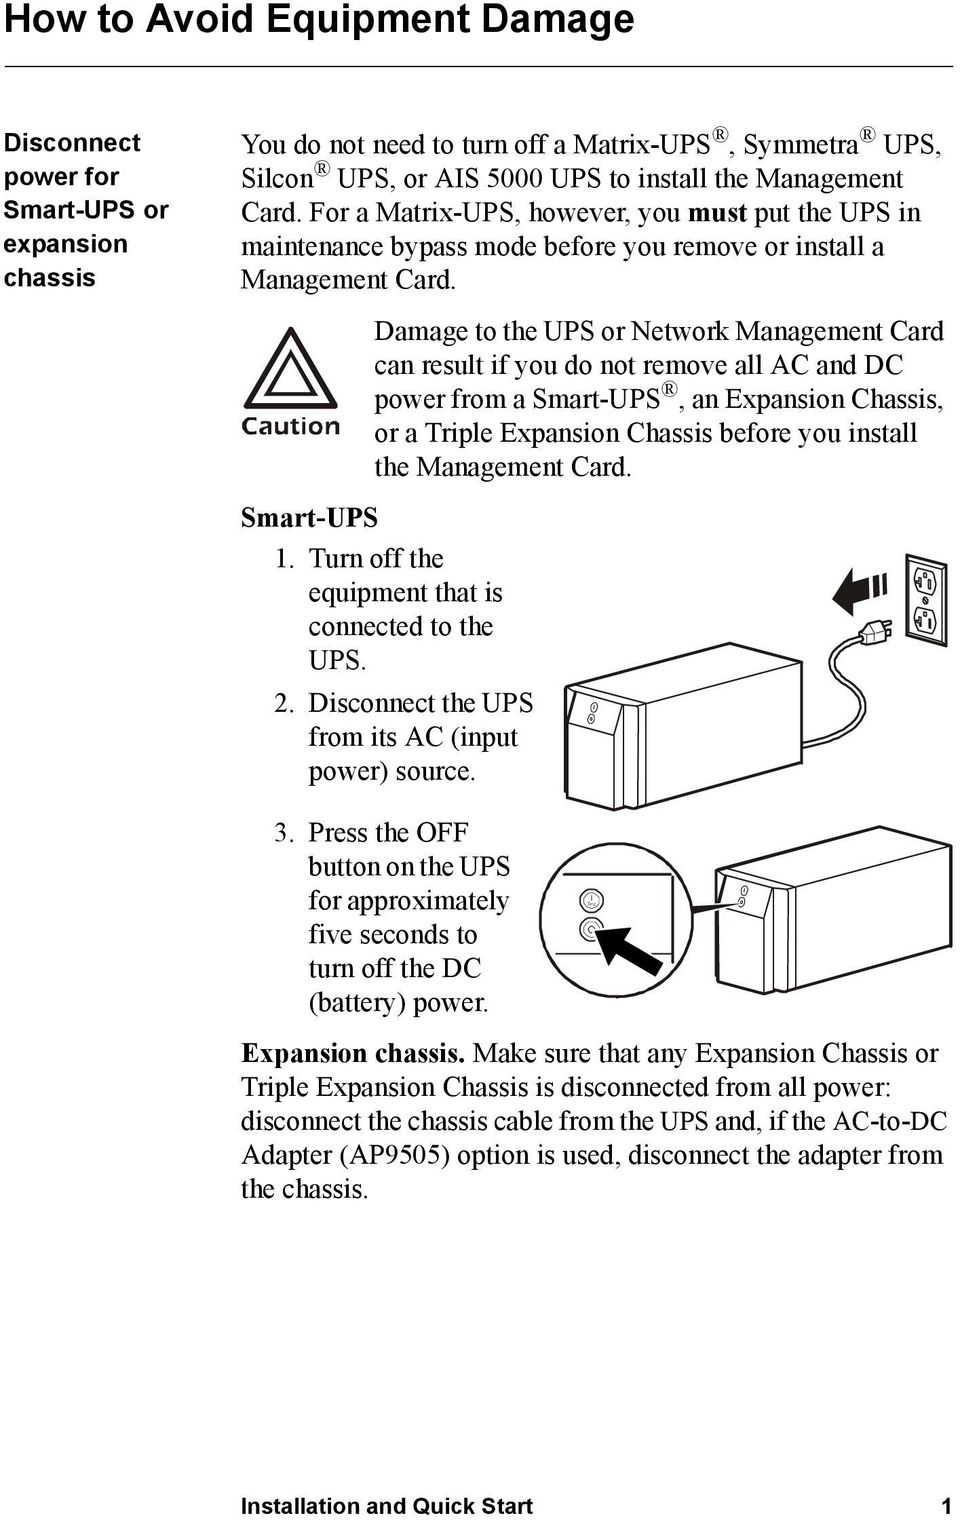 Damage to the UPS or Network Management Card can result if you do not remove all AC and DC power from a Smart-UPS, an Expansion Chassis, or a Triple Expansion Chassis before you install the